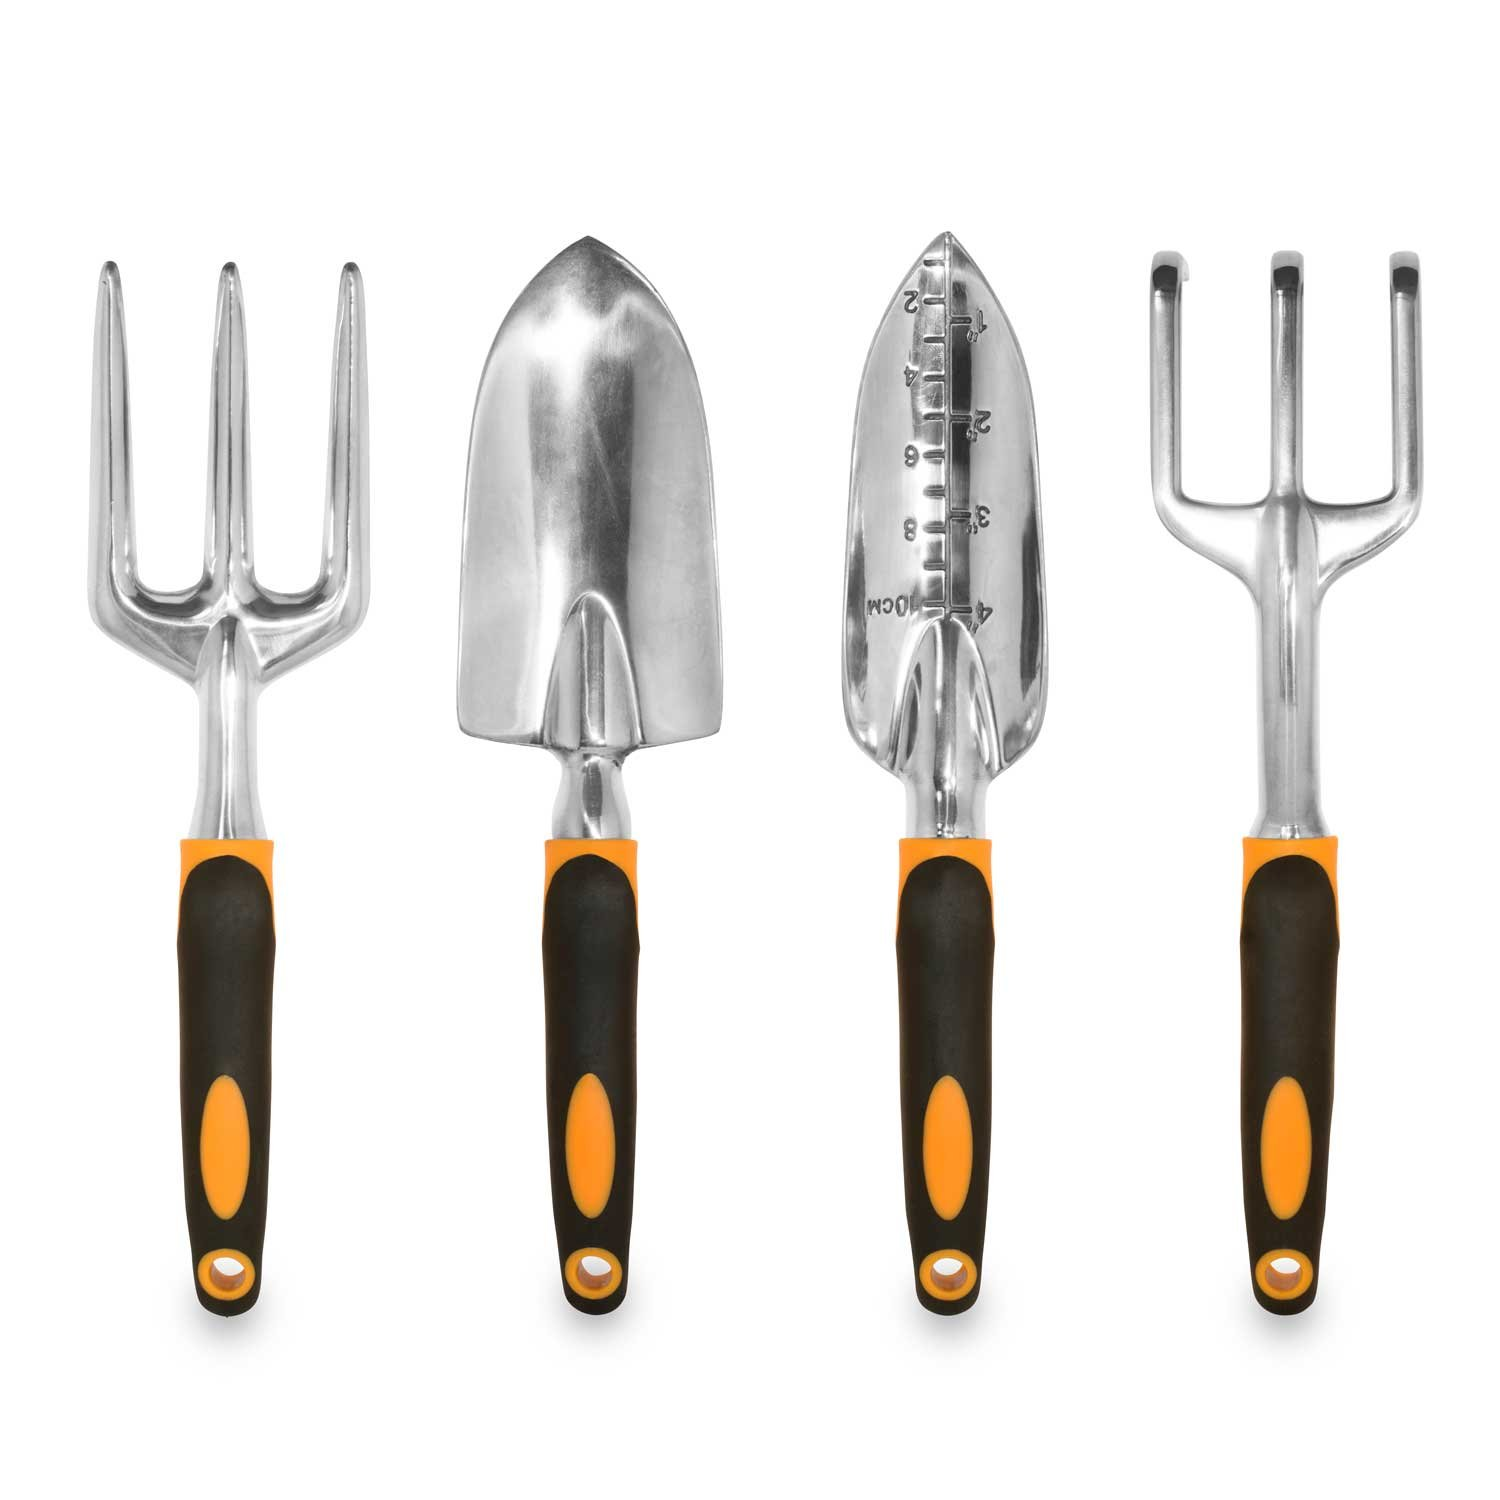 Best hand garden tool set for digging fiskars 3 piece for Best garden tools to have